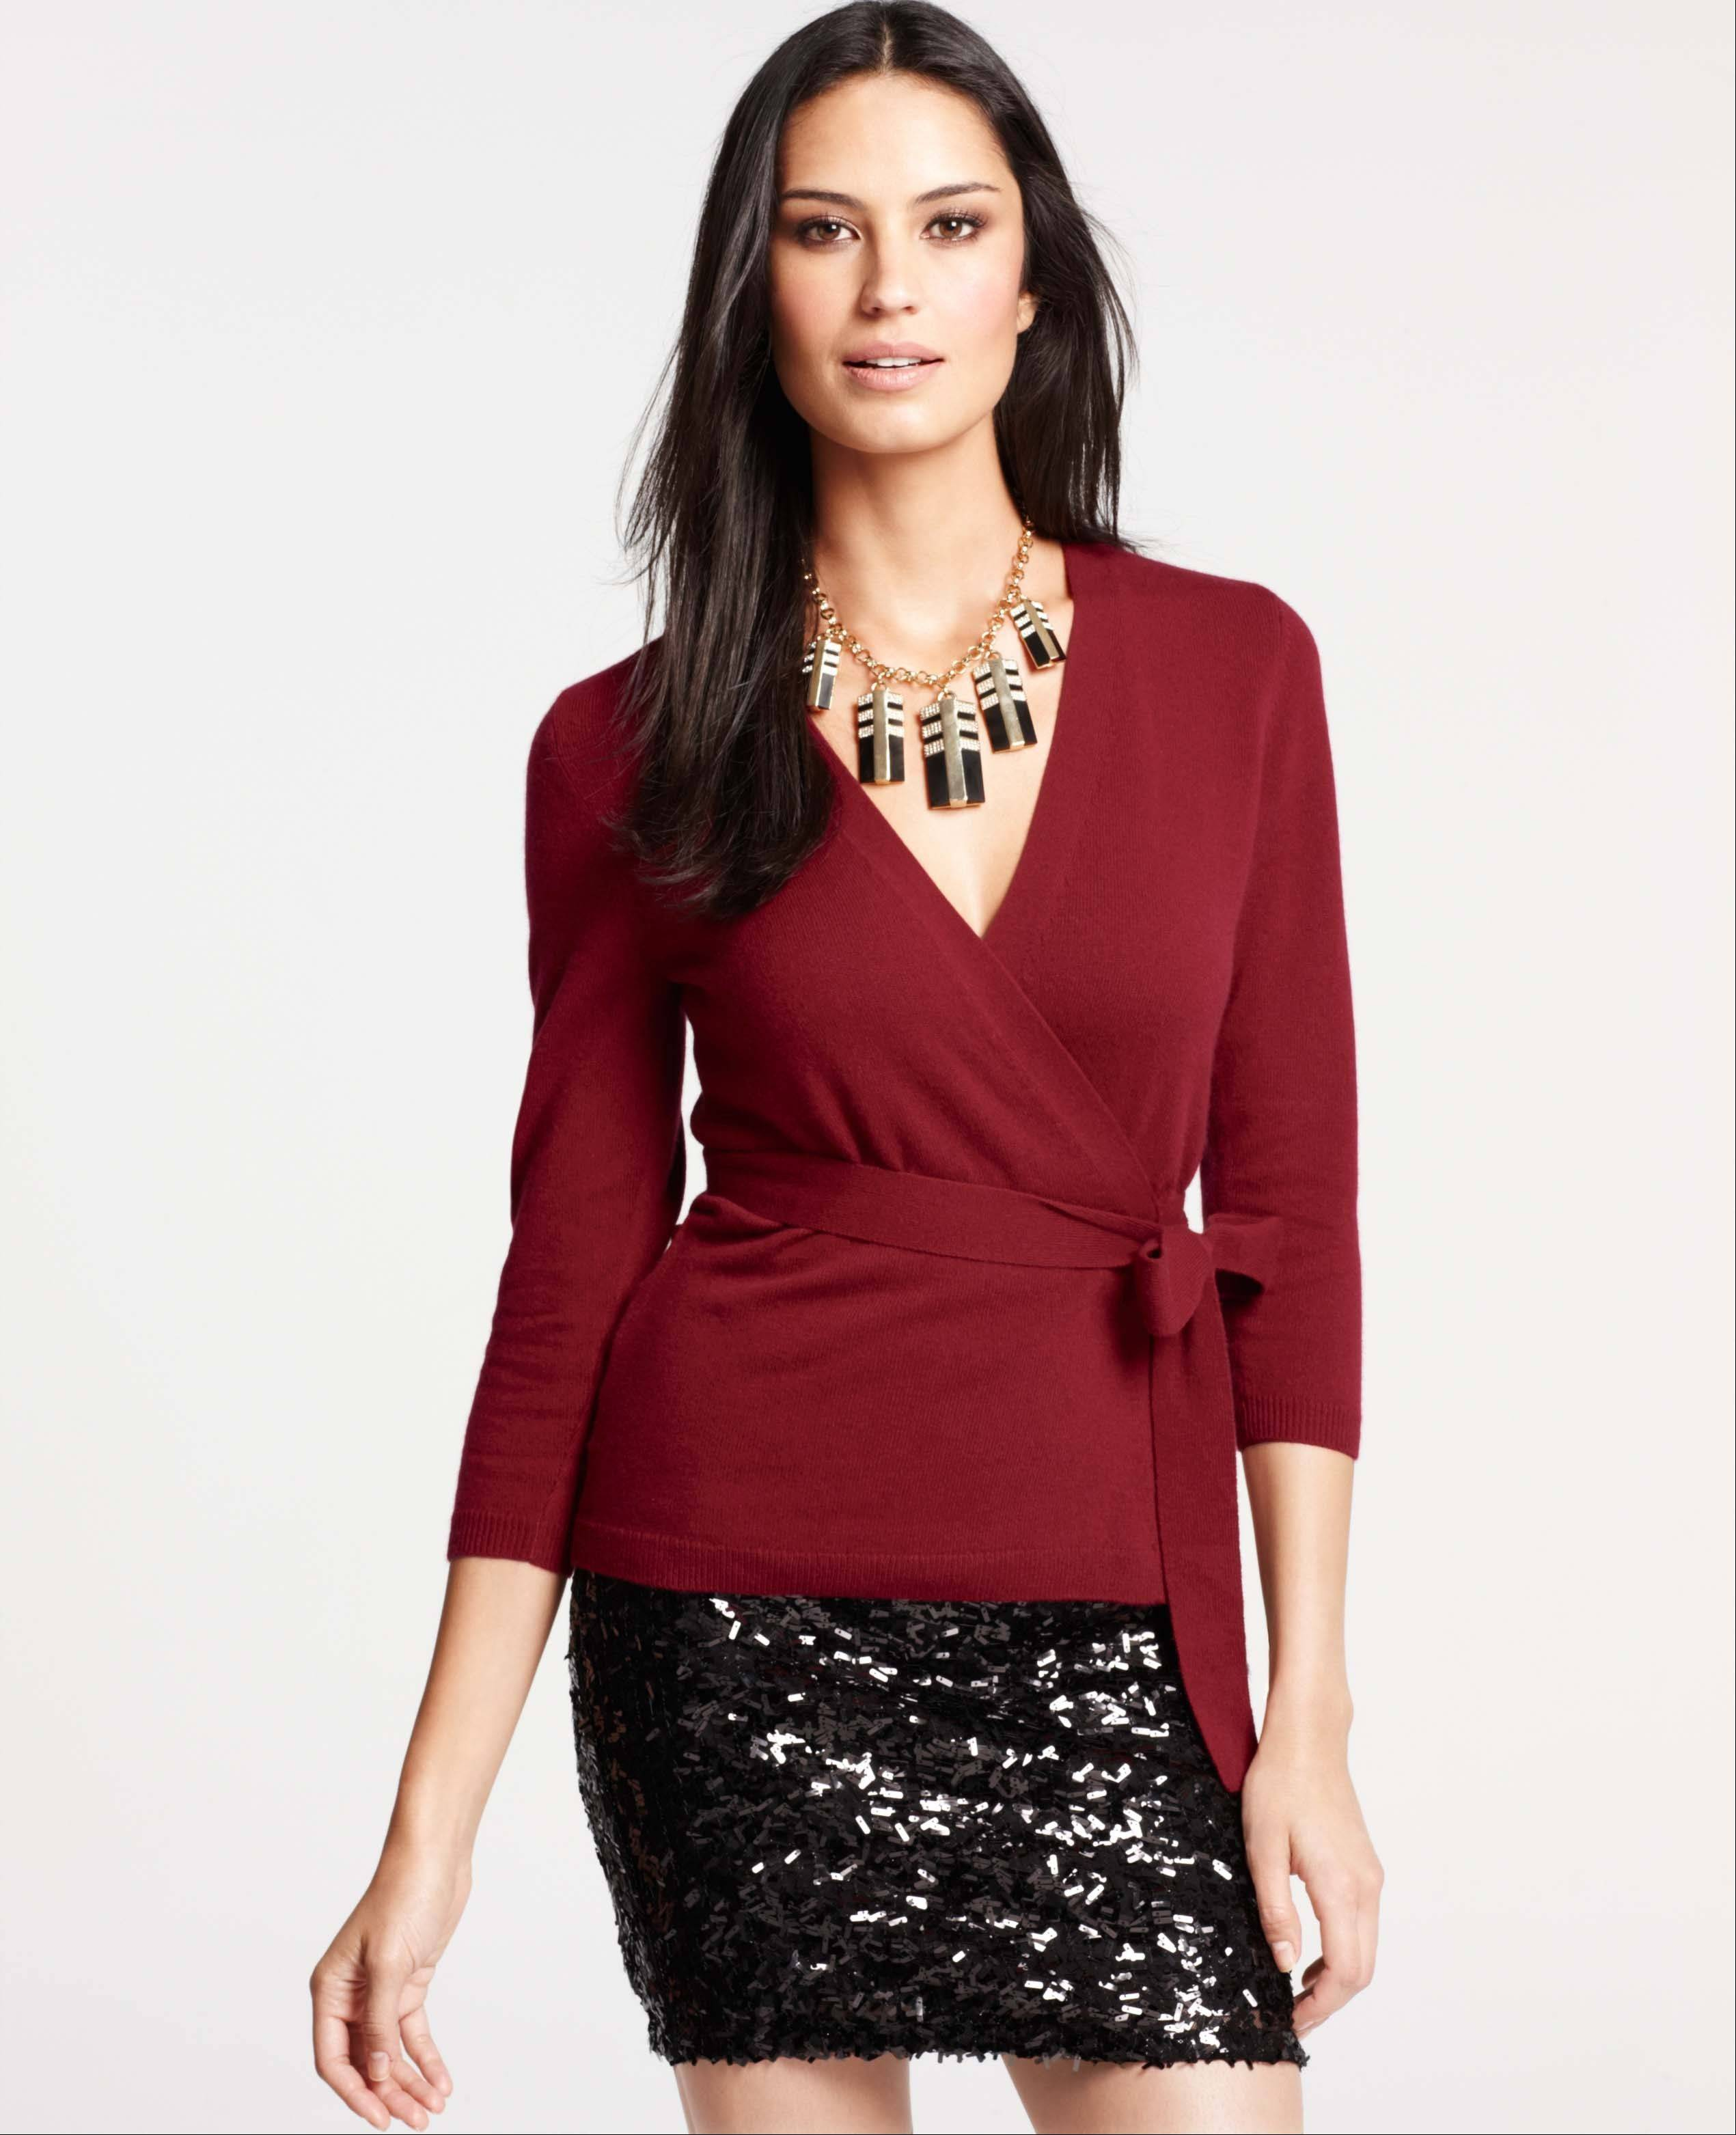 A cashmere wrap cardigan sweater and black sequin miniskirt makes a stylish statement for a party.